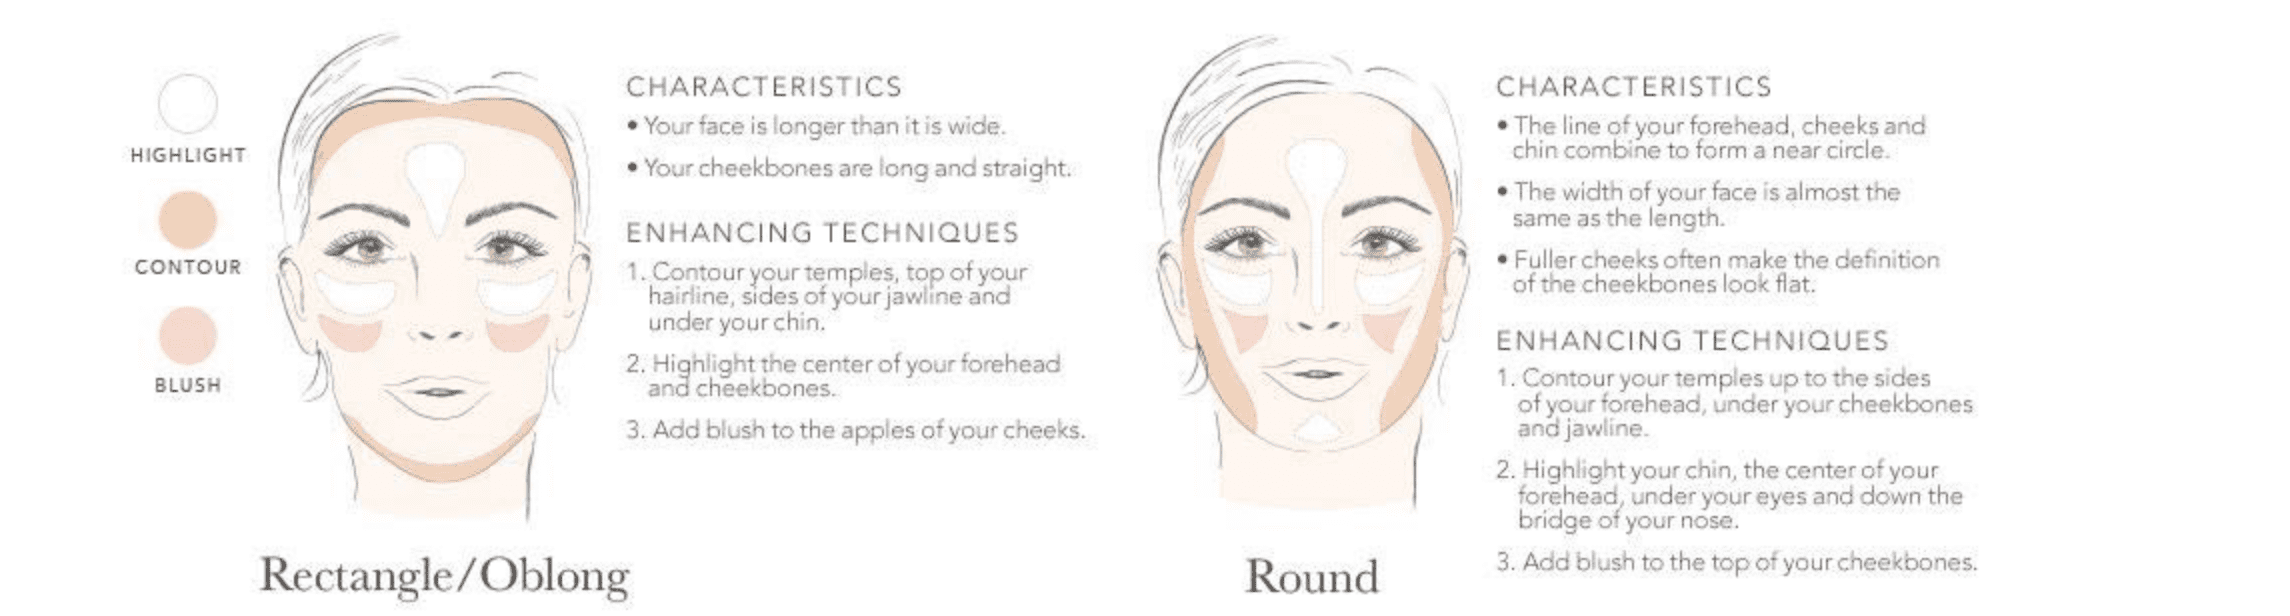 Face Shape Rectangle/Oblong and Round